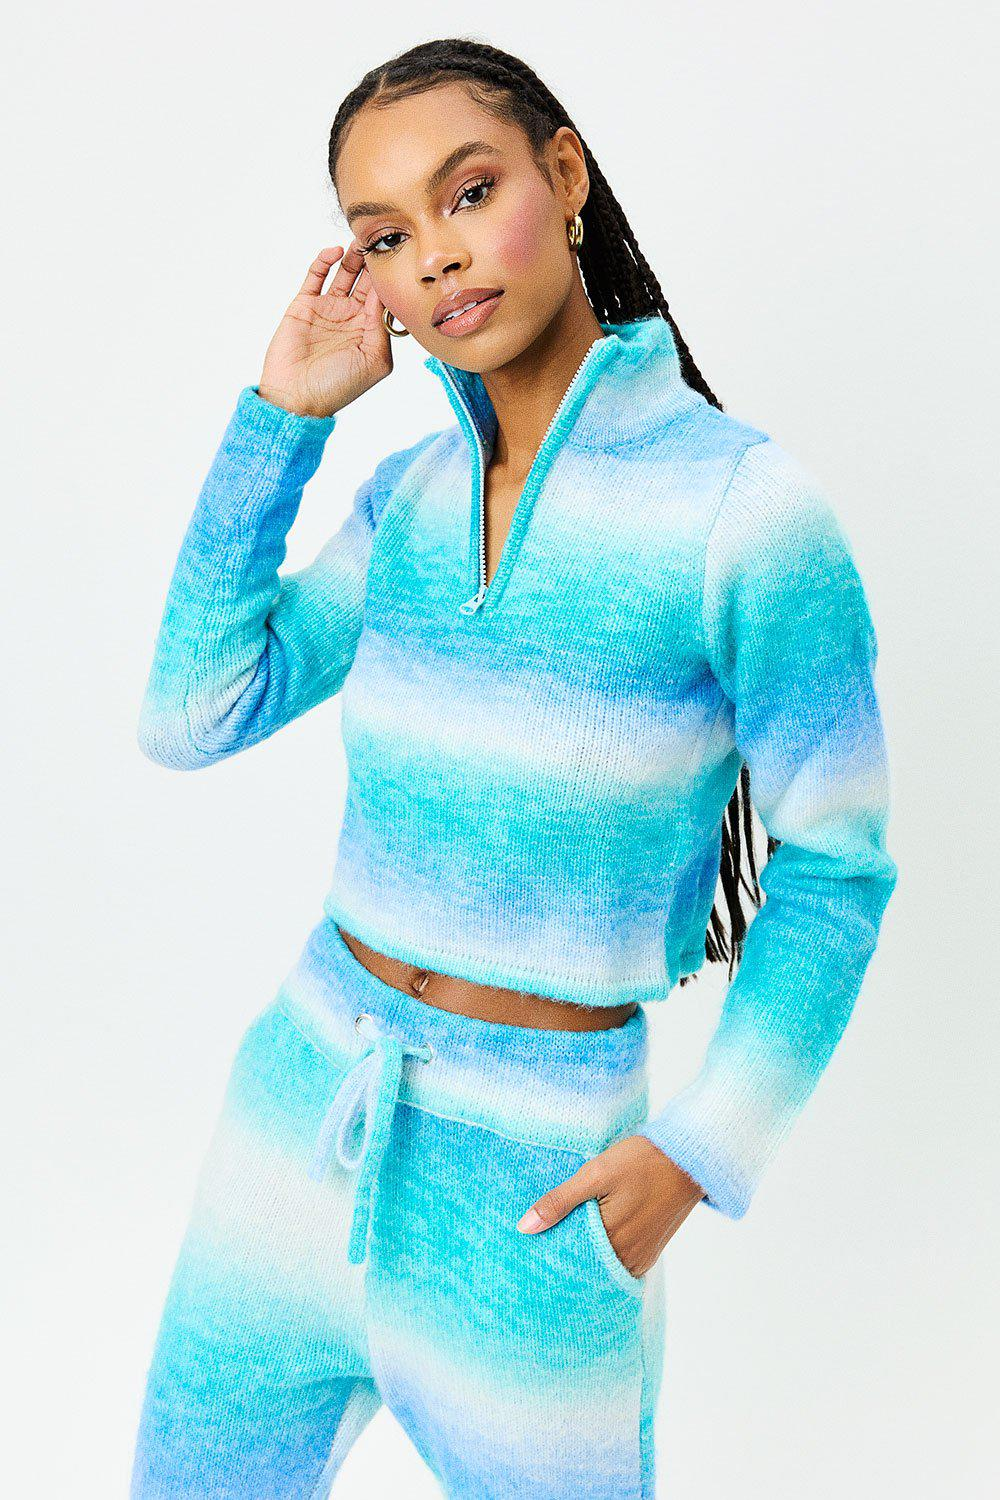 Bowie Cropped Knit Sweater - Blue Horizon